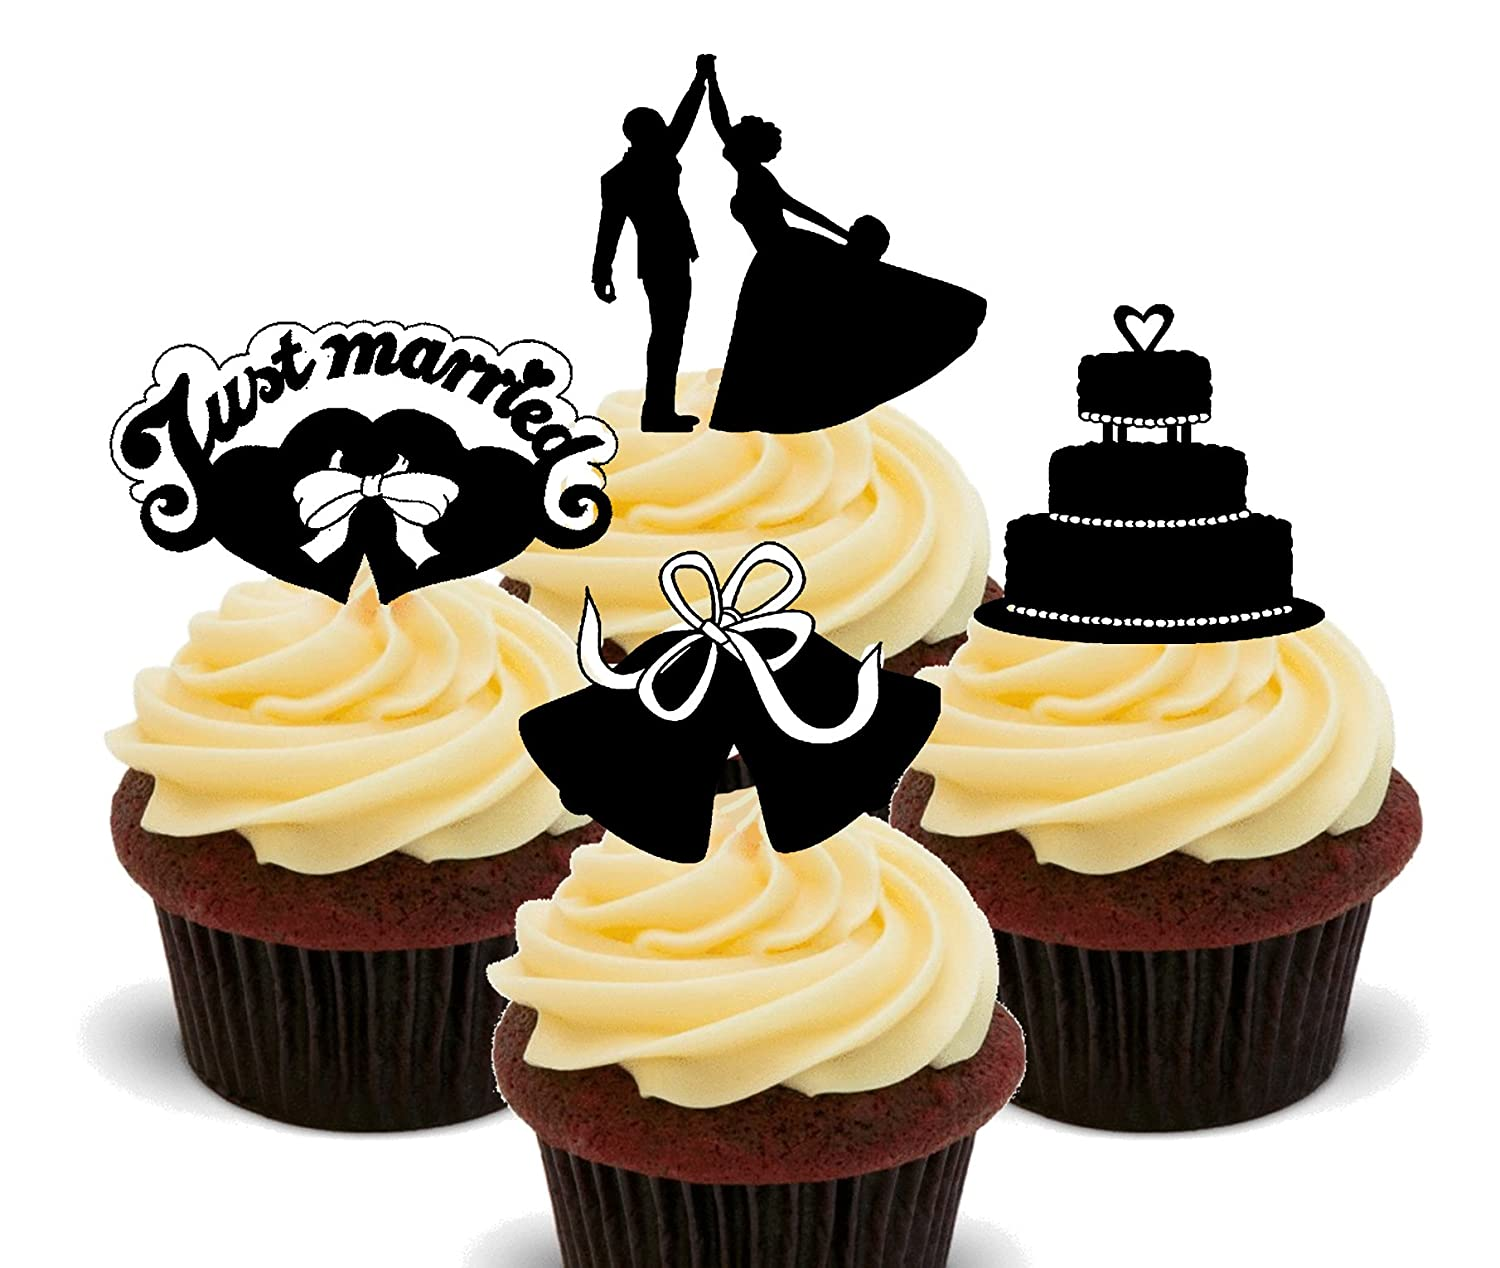 Just Married - Wedding Silhouettes Edible Cupcake Toppers - Stand-up ...